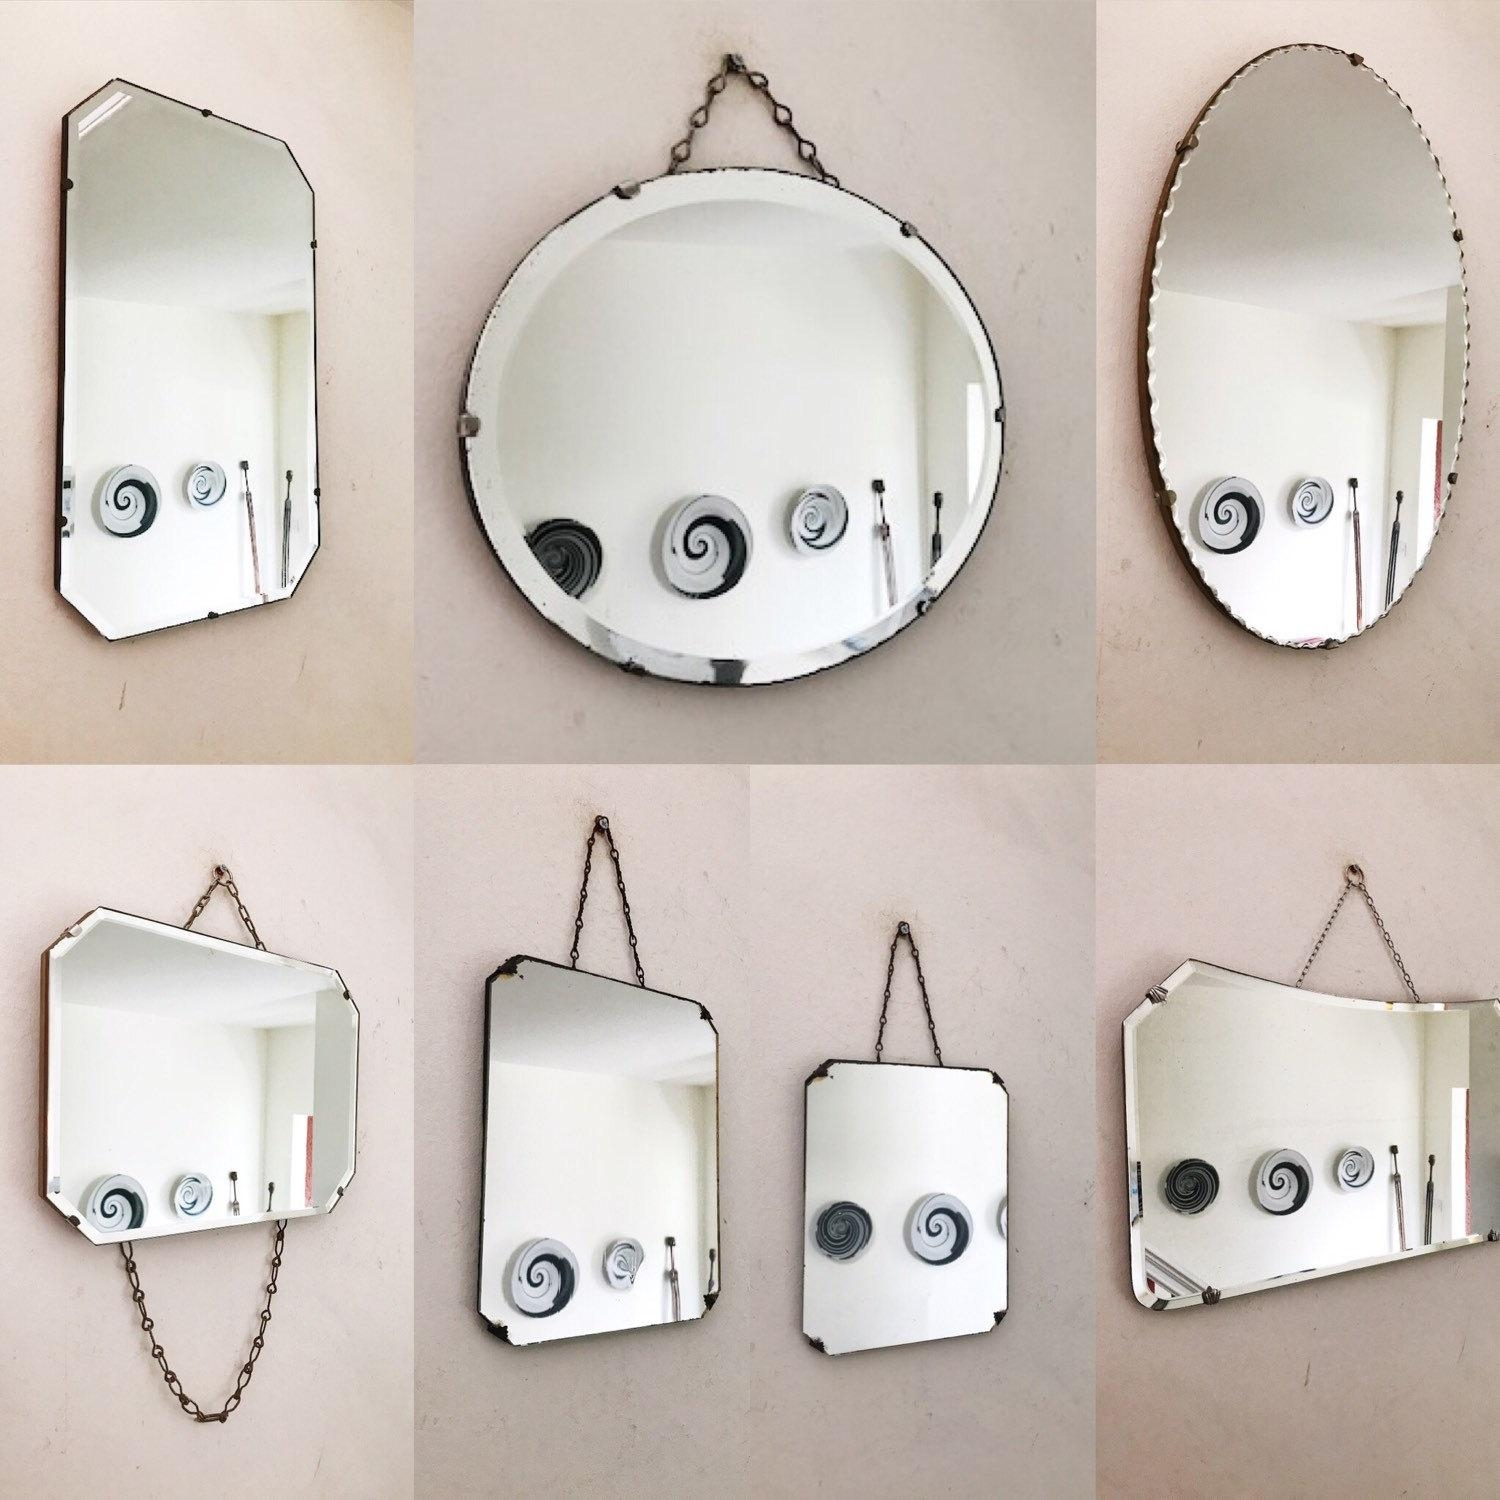 Vintage Art Deco Frameless Mirror/frameless Vintage 1930S Throughout Art Deco Frameless Mirror (View 7 of 20)